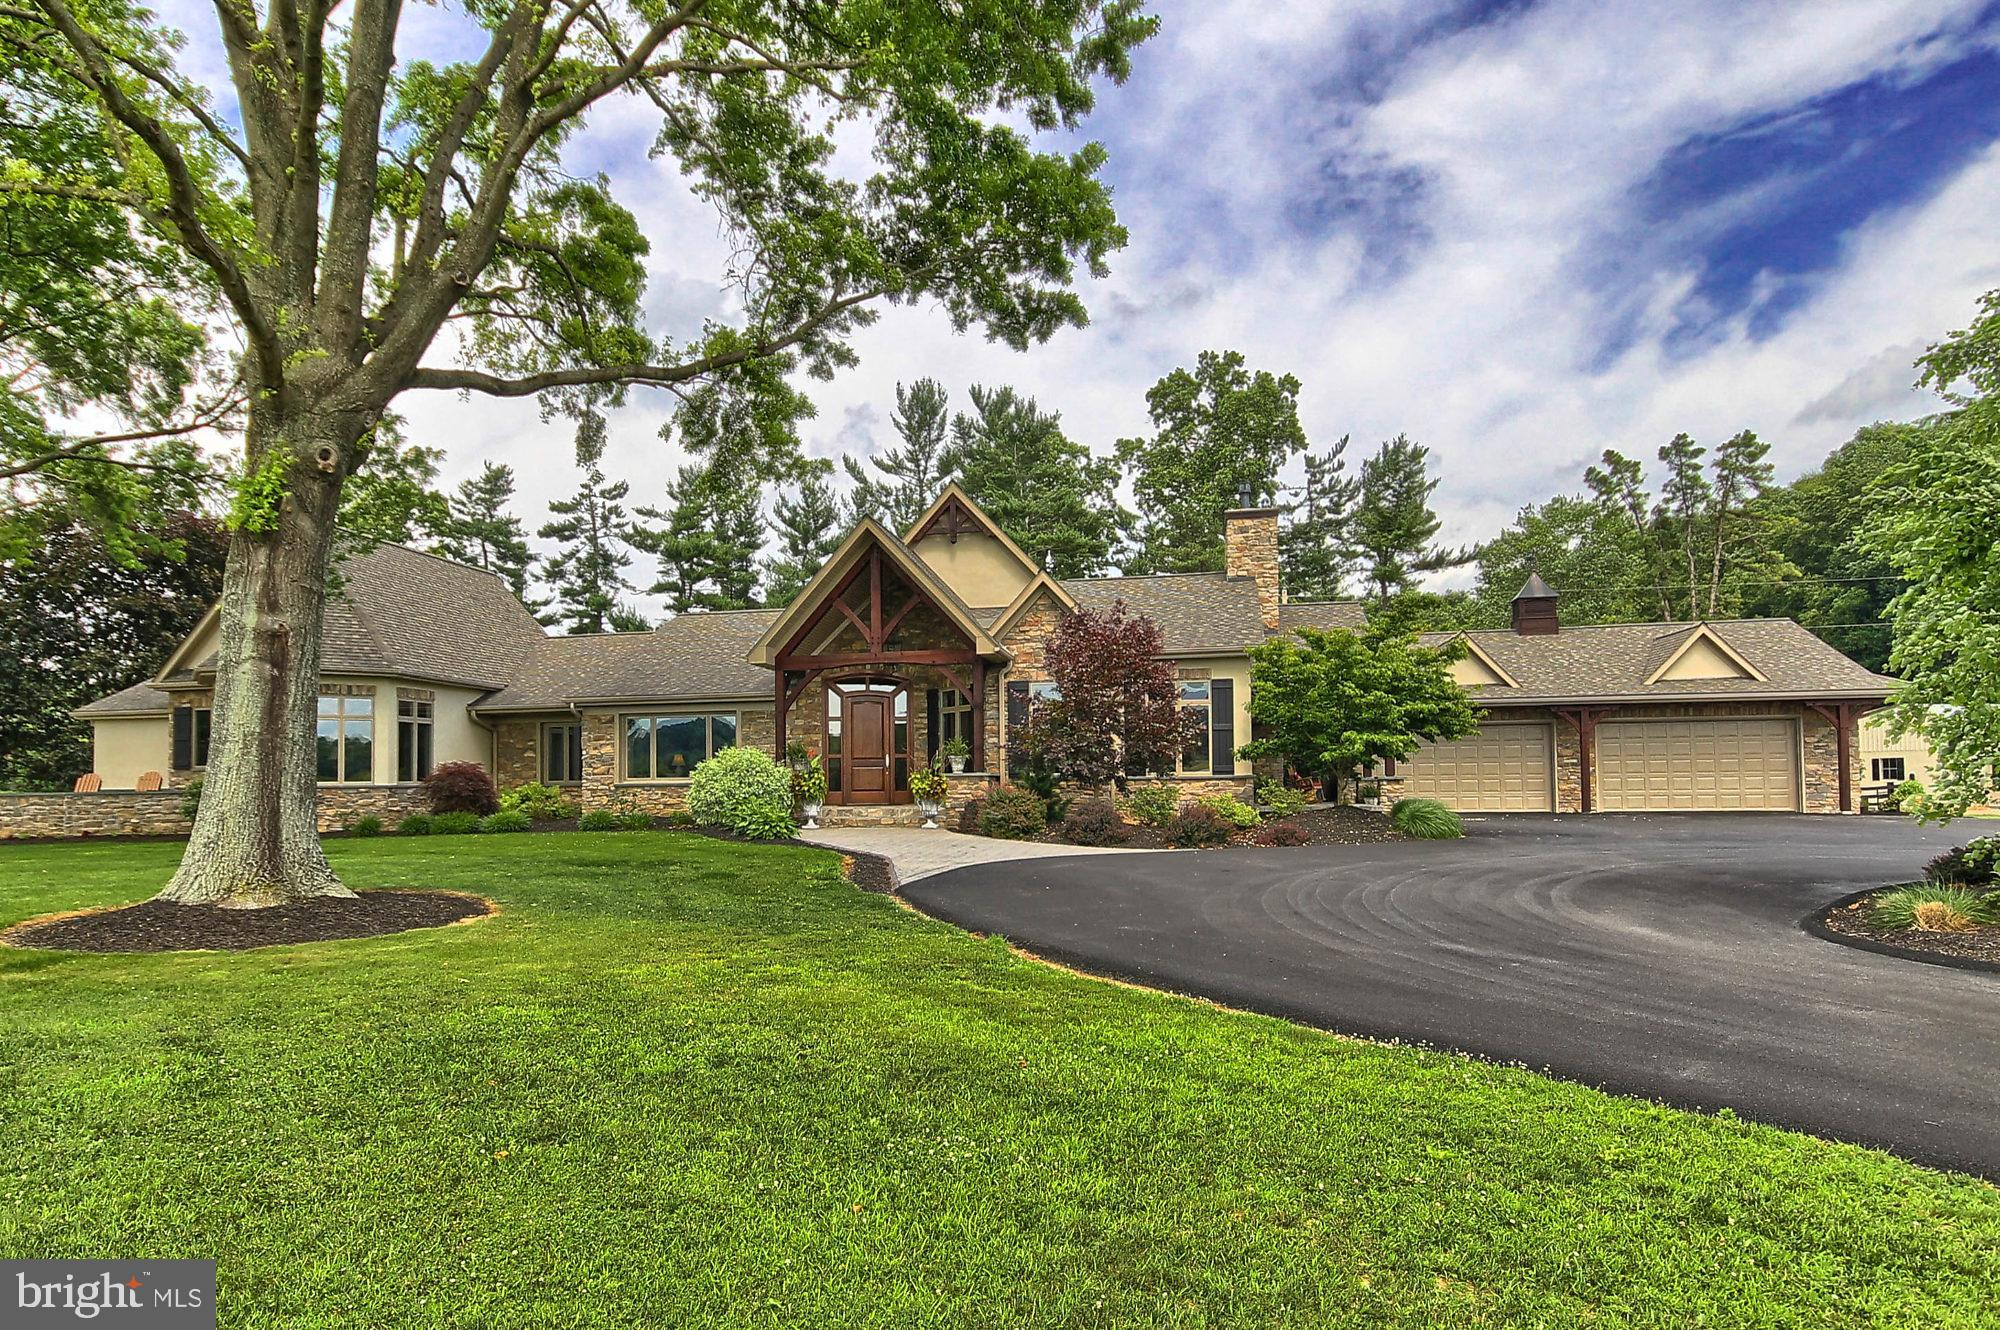 6869 RIVER ROAD, CONESTOGA, PA 17516